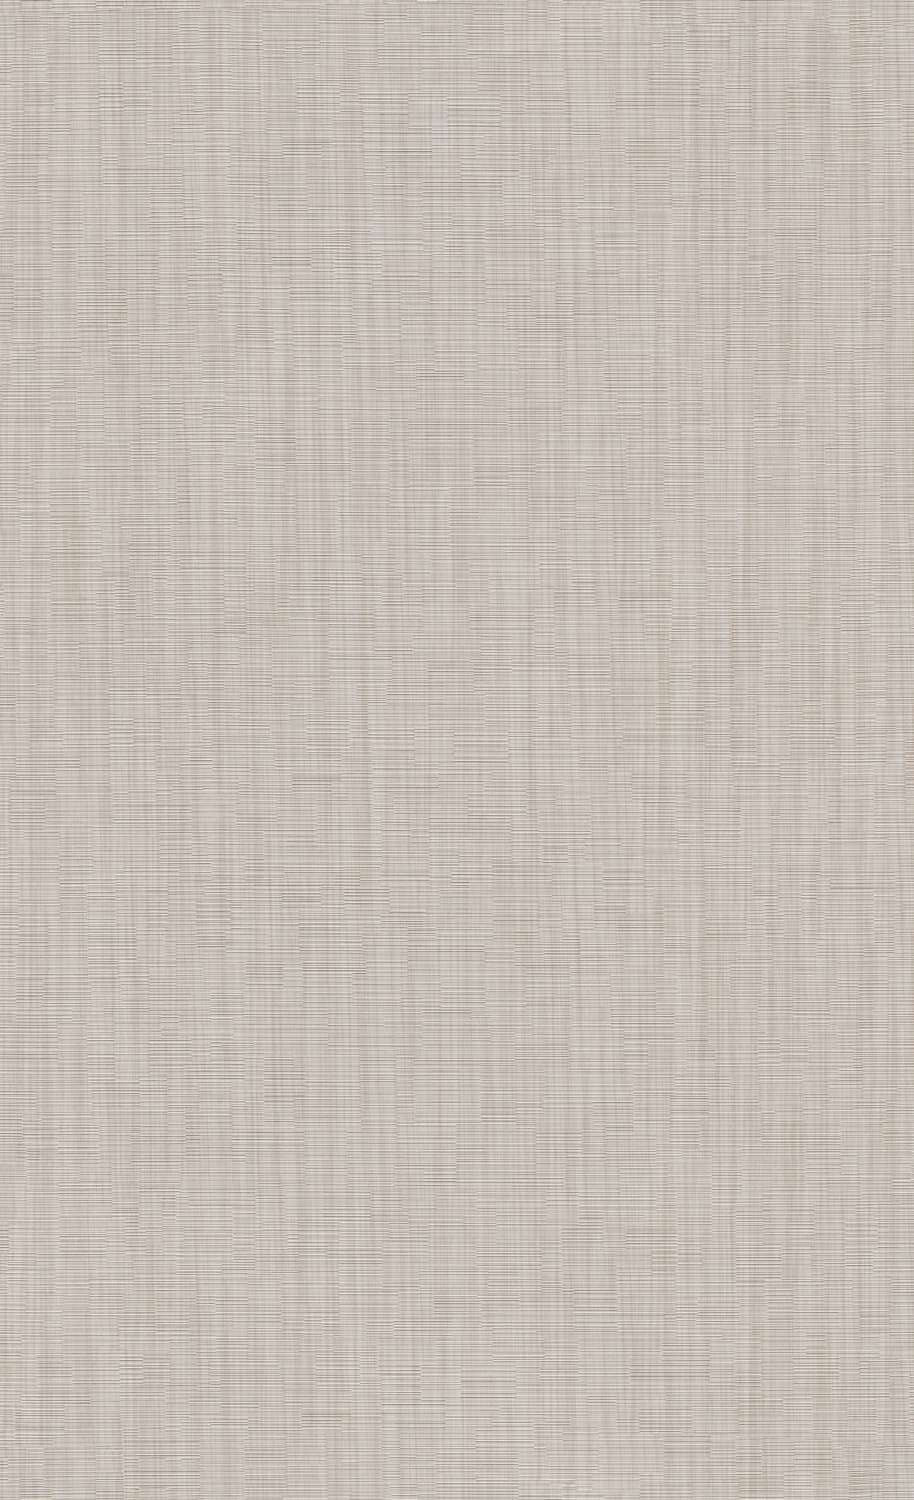 Grey Rustic Wallpaper C7296  | Vinyl Contract Wallcovering